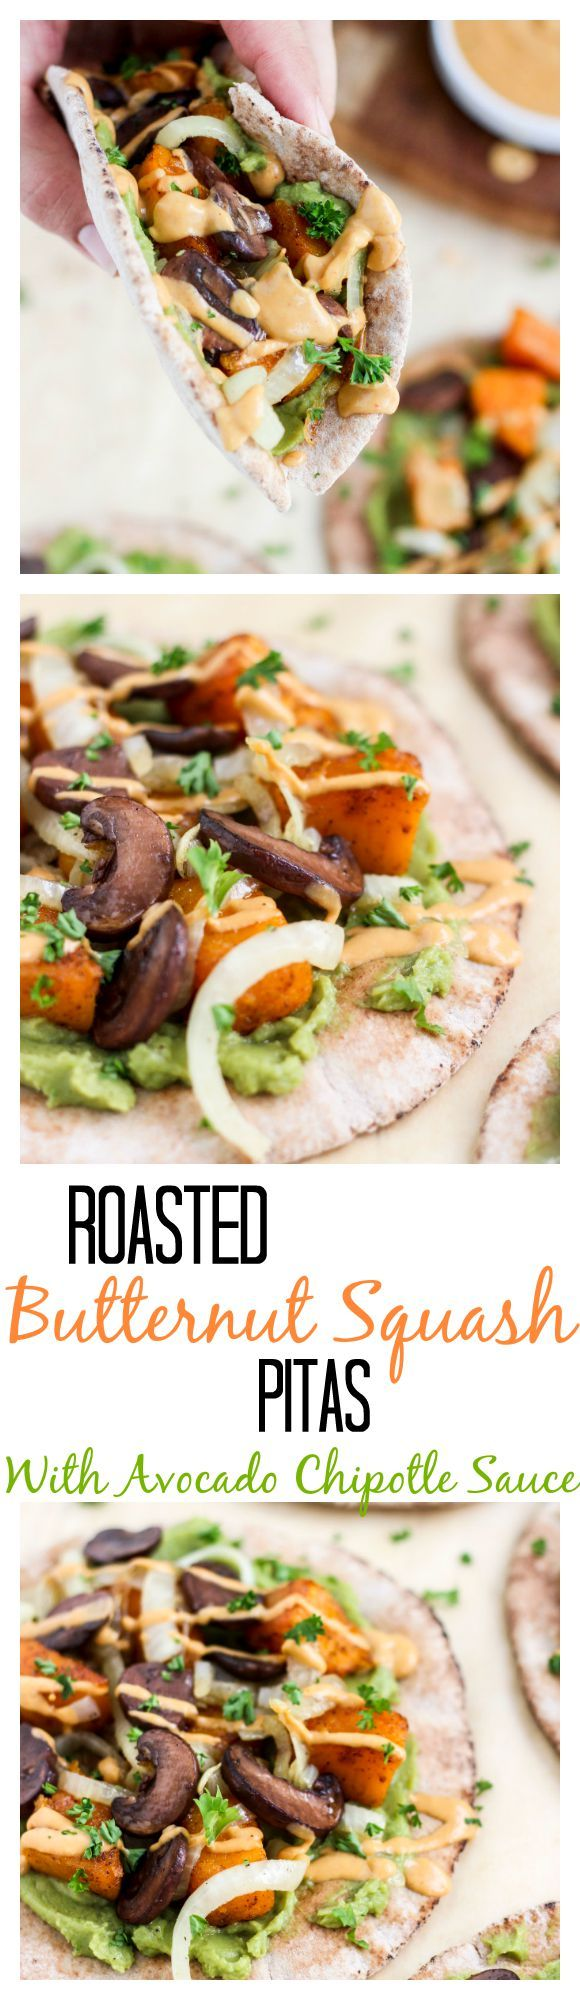 Spicy roasted butternut squash, sautéed onions, mashed avocado, and portobello mushrooms, on a pita, with a chipotle yogurt sauce. Easy vegetarian recipe, that you could use whatever veggies you have on hand! Spicy chipotle sauce is the best!